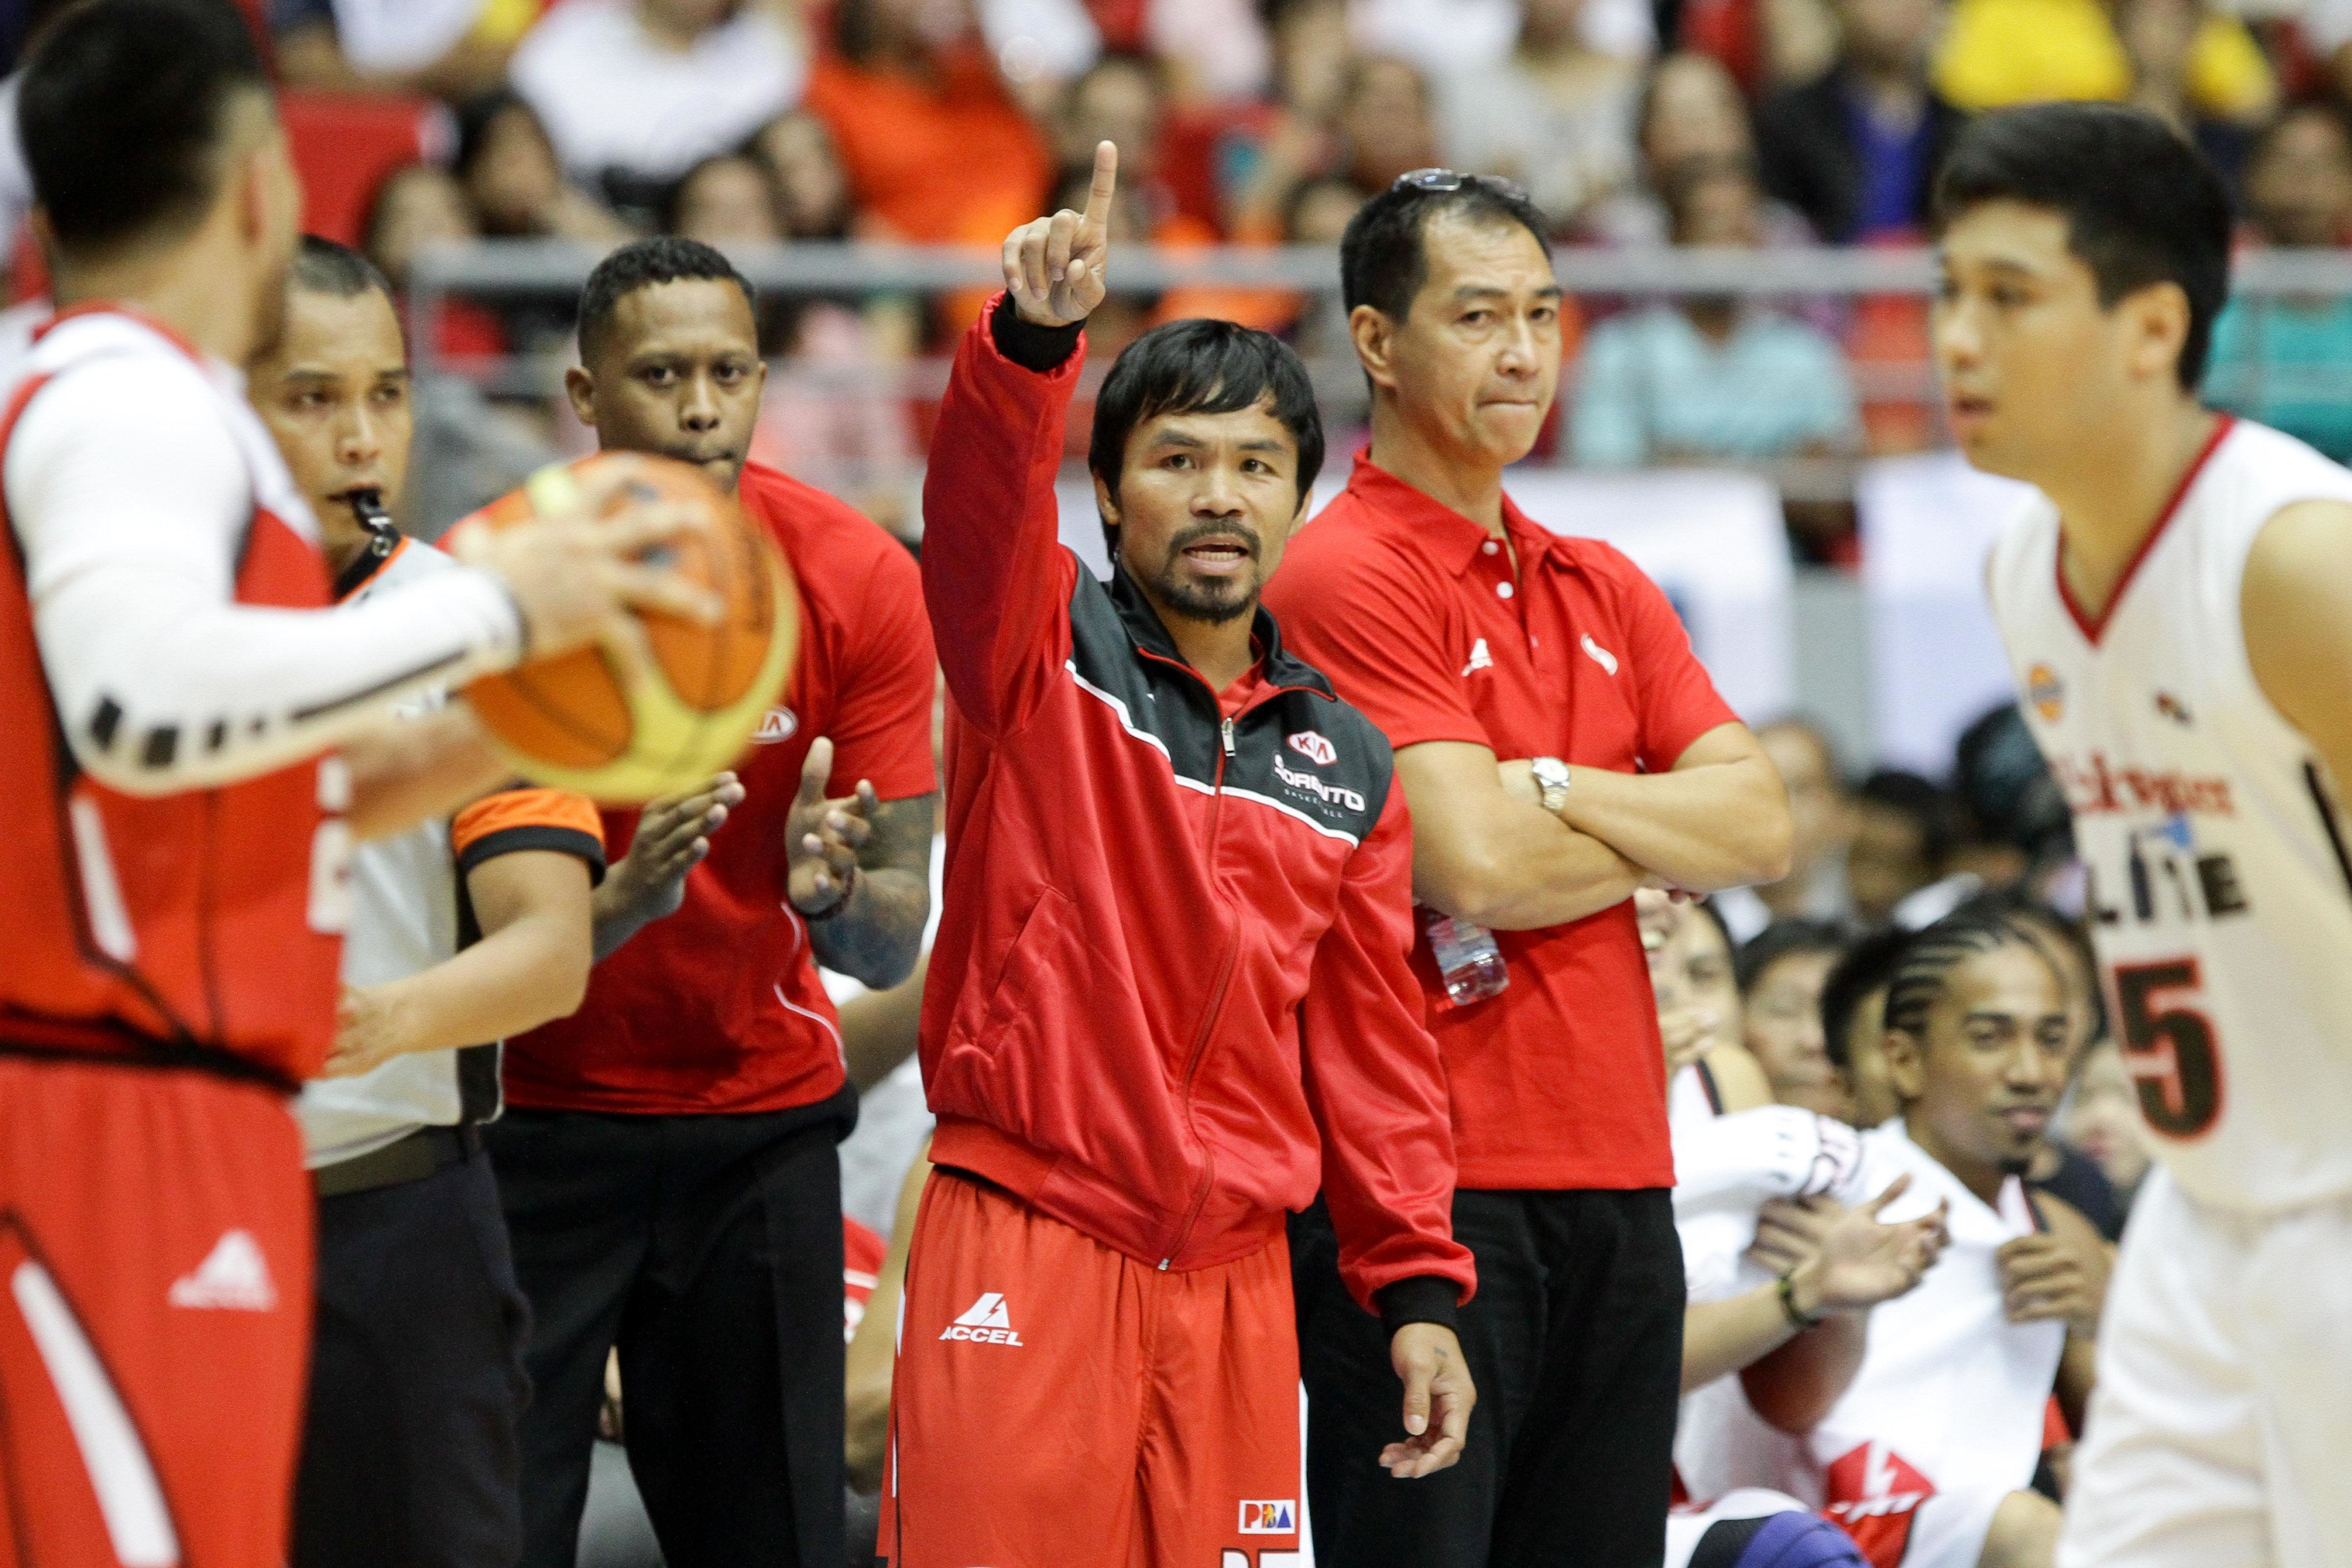 Manny Pacquiao head coach of Kia signals to his players in